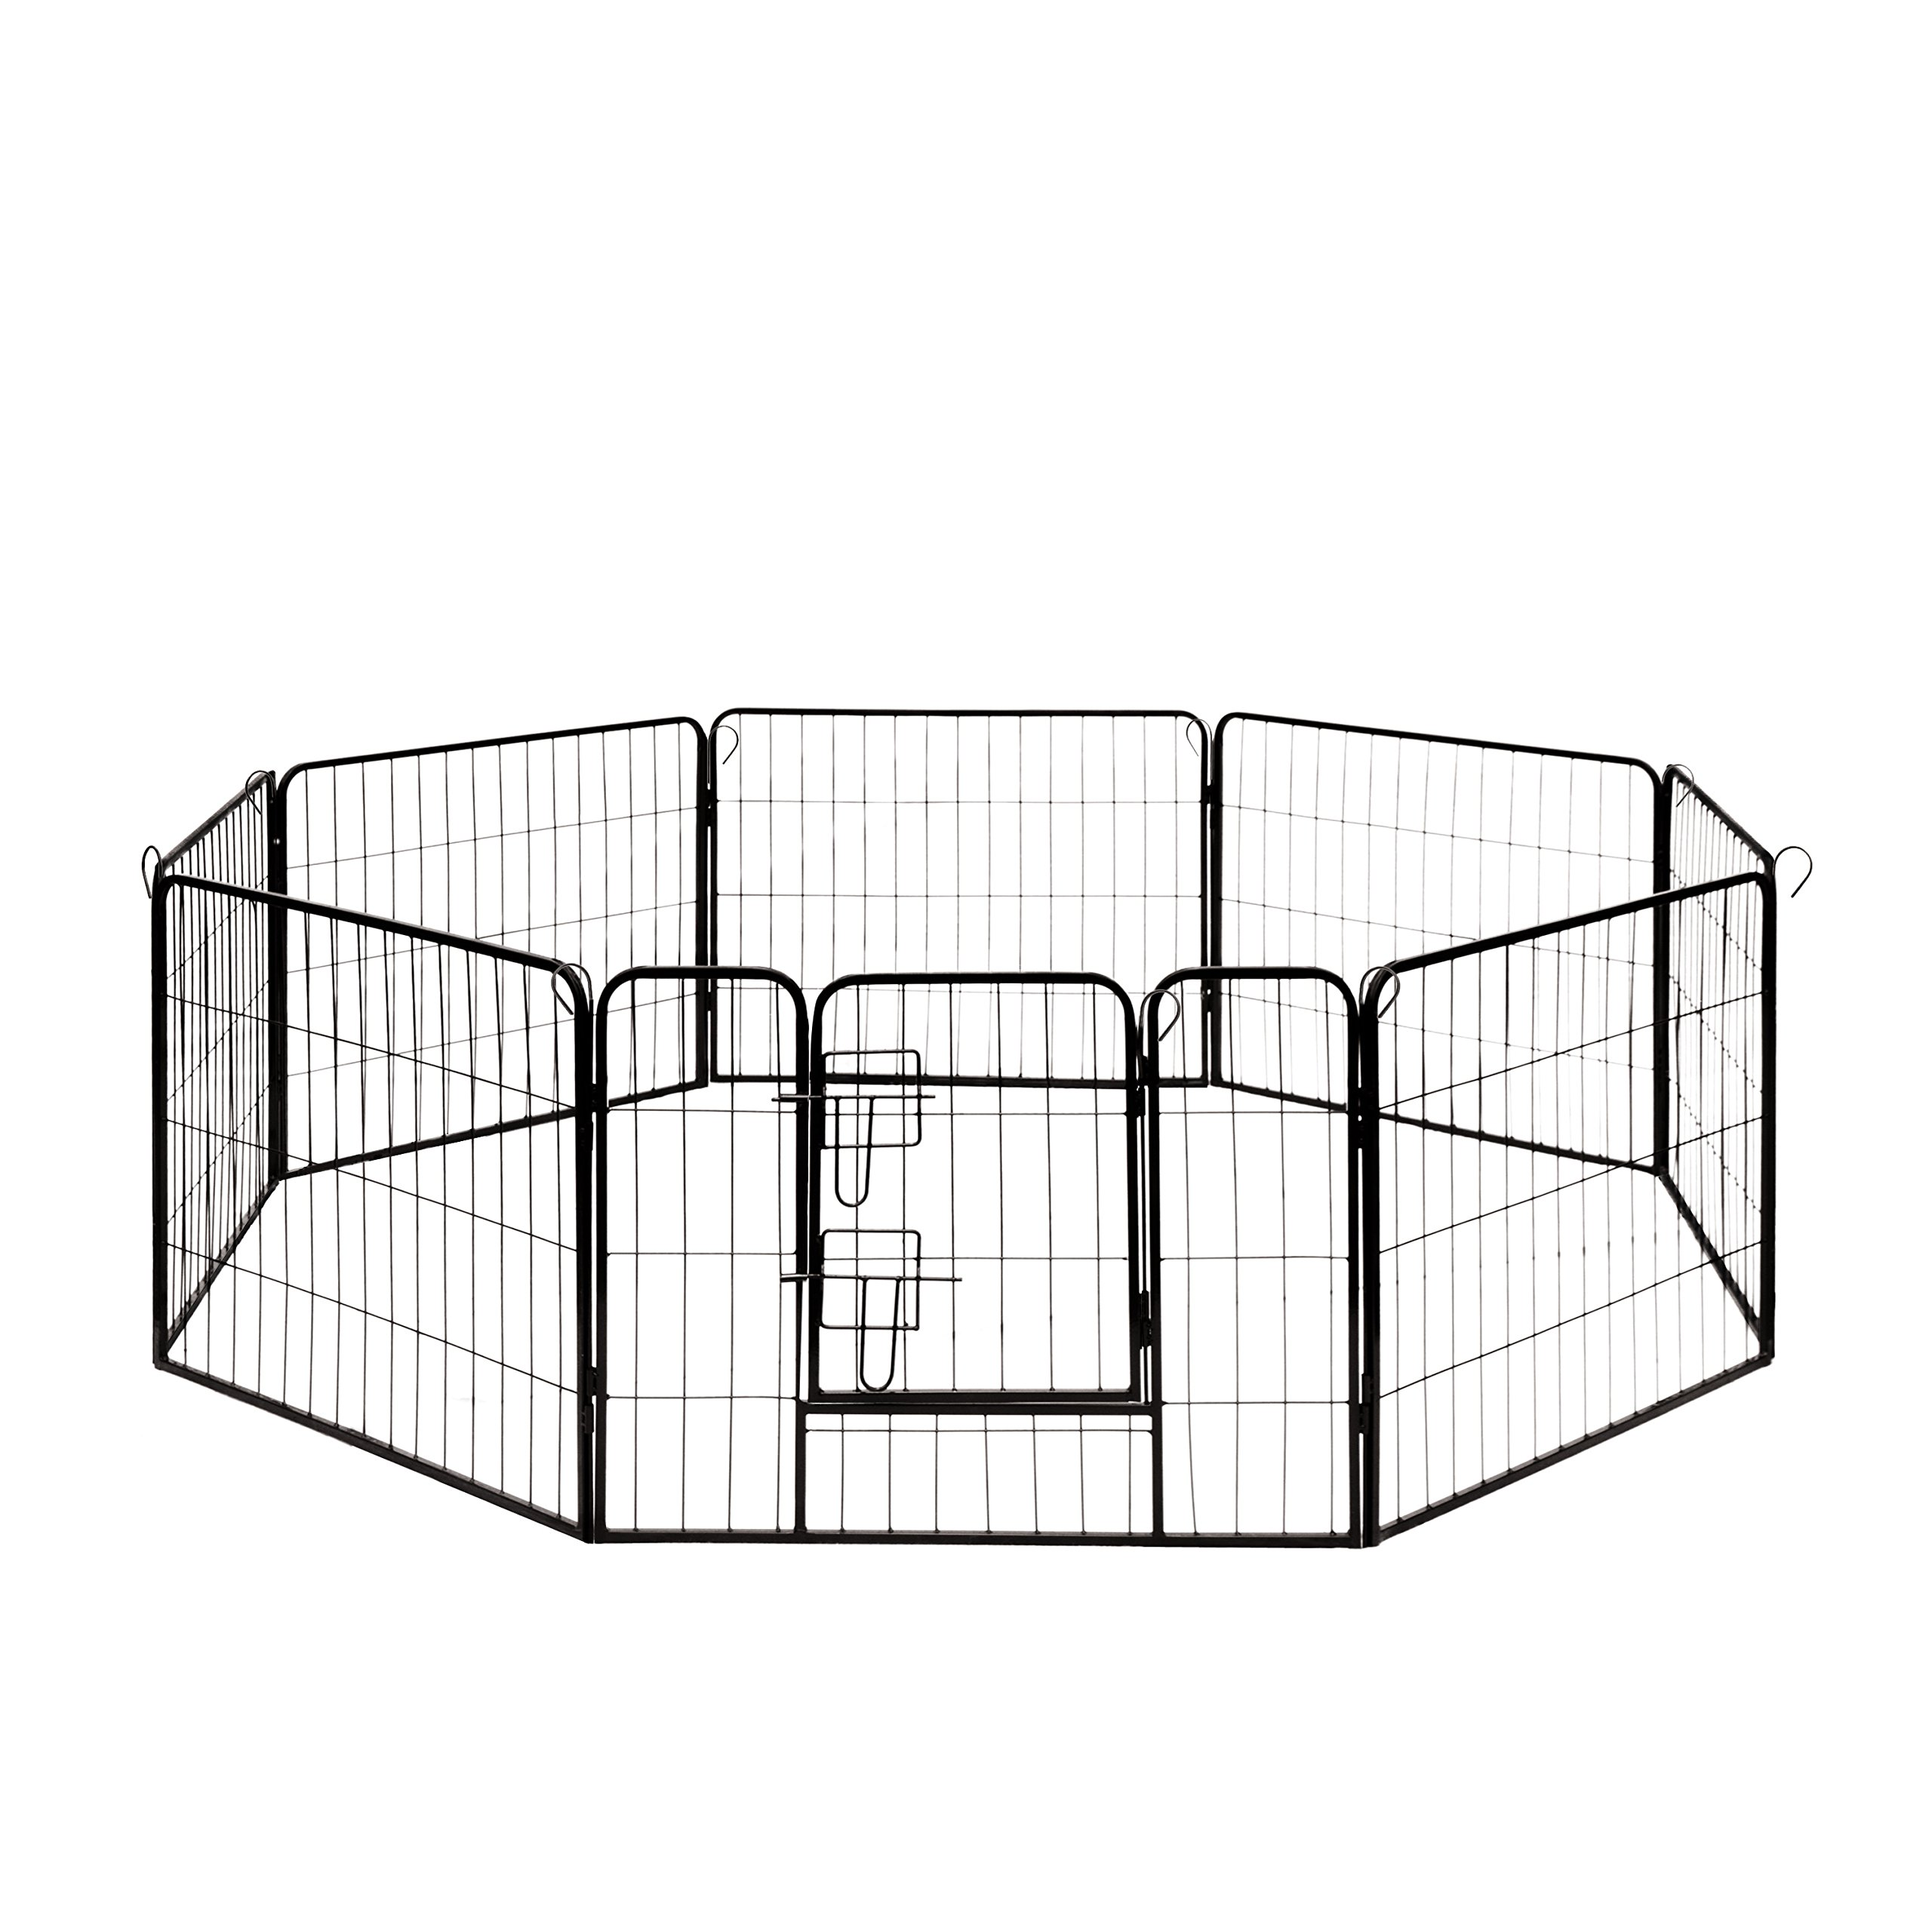 ALEKO DK24X32 Heavy Duty Pet Playpen Dog Kennel Pen Exercise Cage Fence 8 Panel 24 x 32 Inches Black